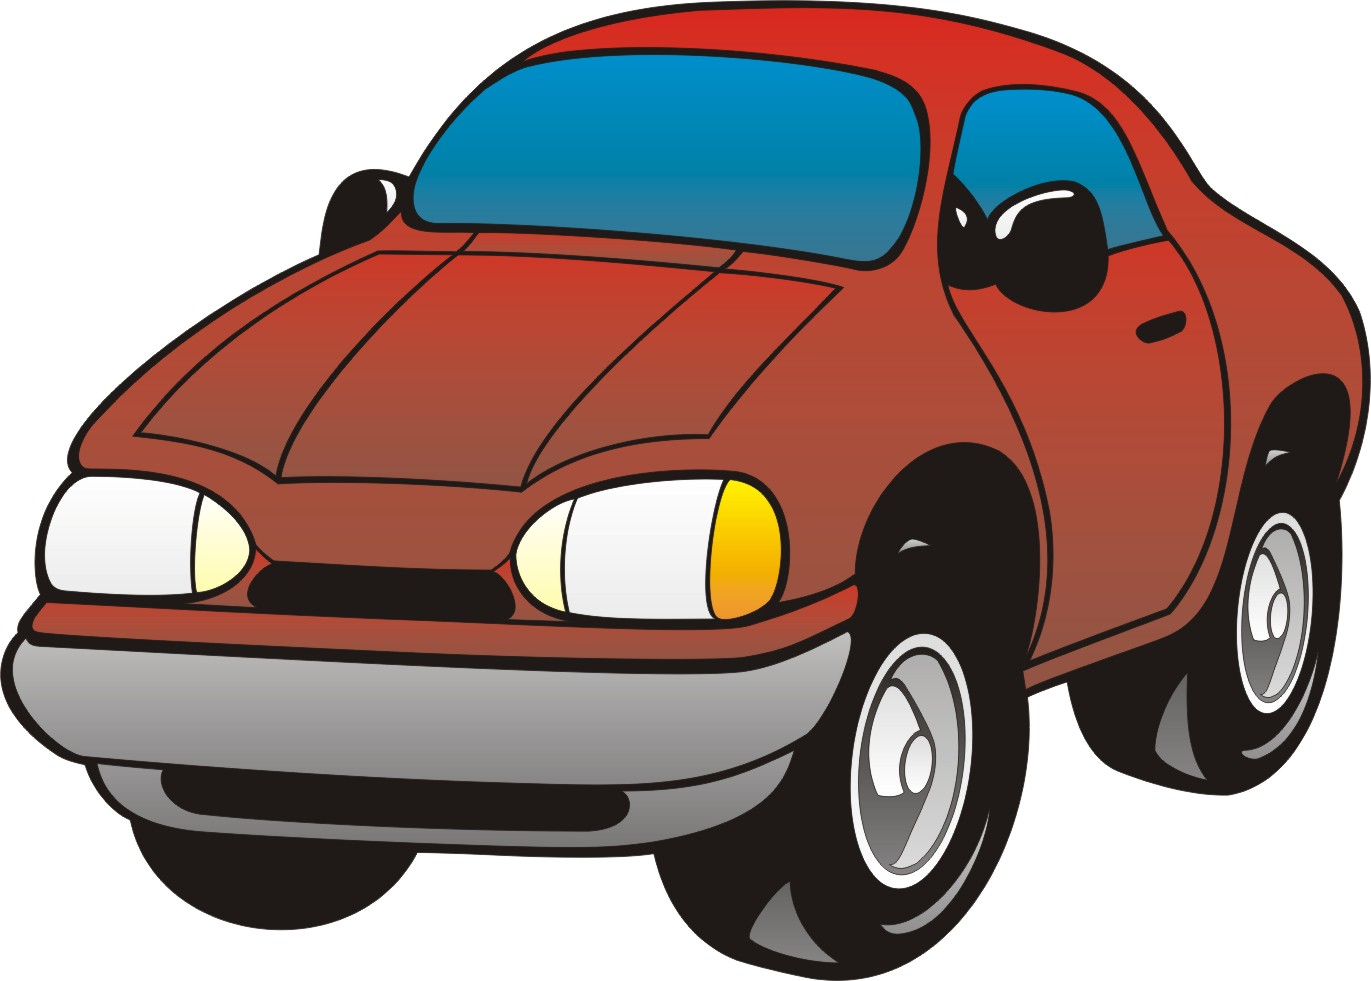 Car Cartoons Pictures - Cliparts.co